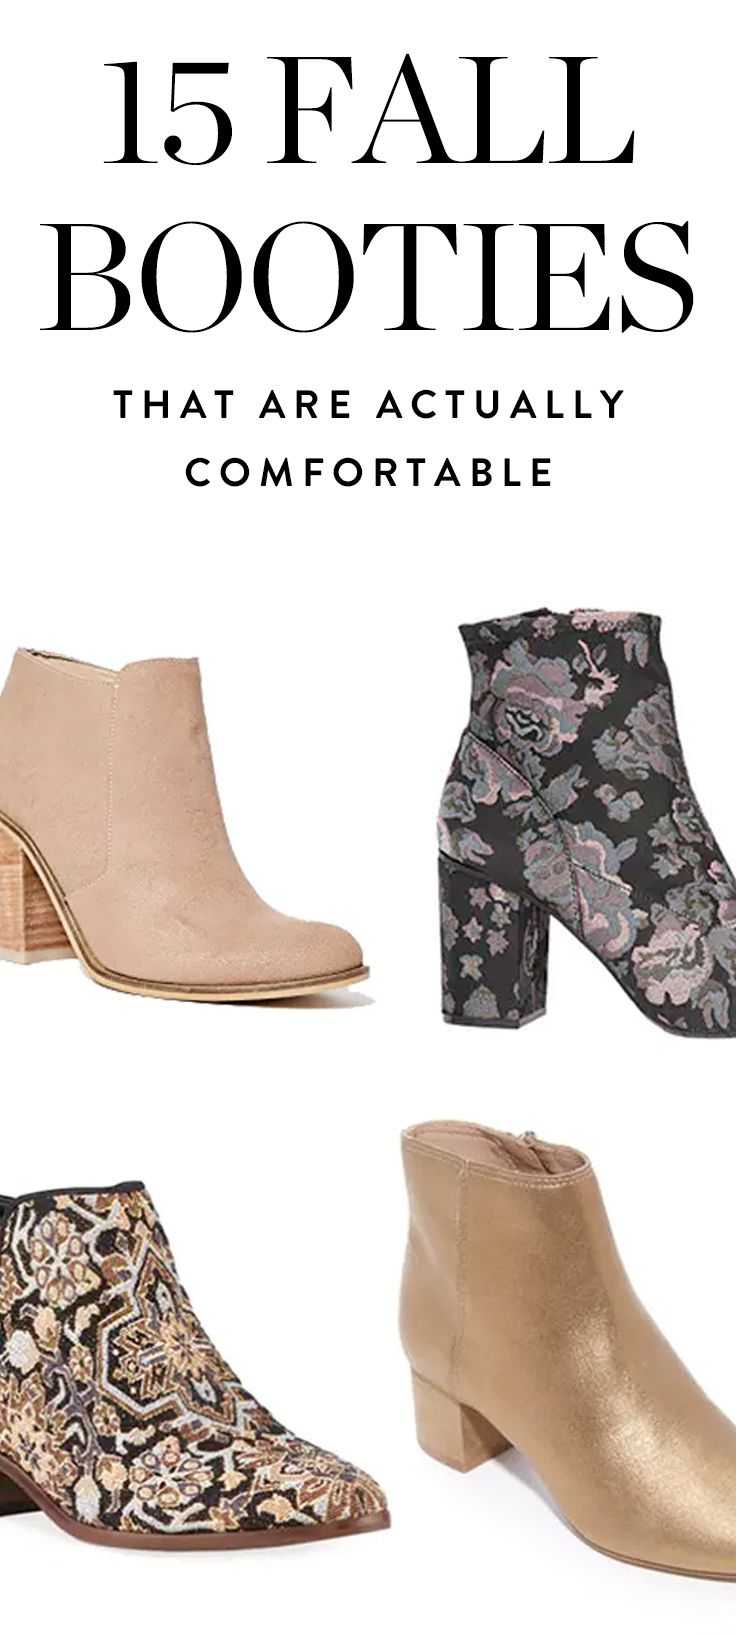 outletvarious outlet schwarz comfort schwarzgabor various gabor colors sale women shoes p ankle on comforter boots